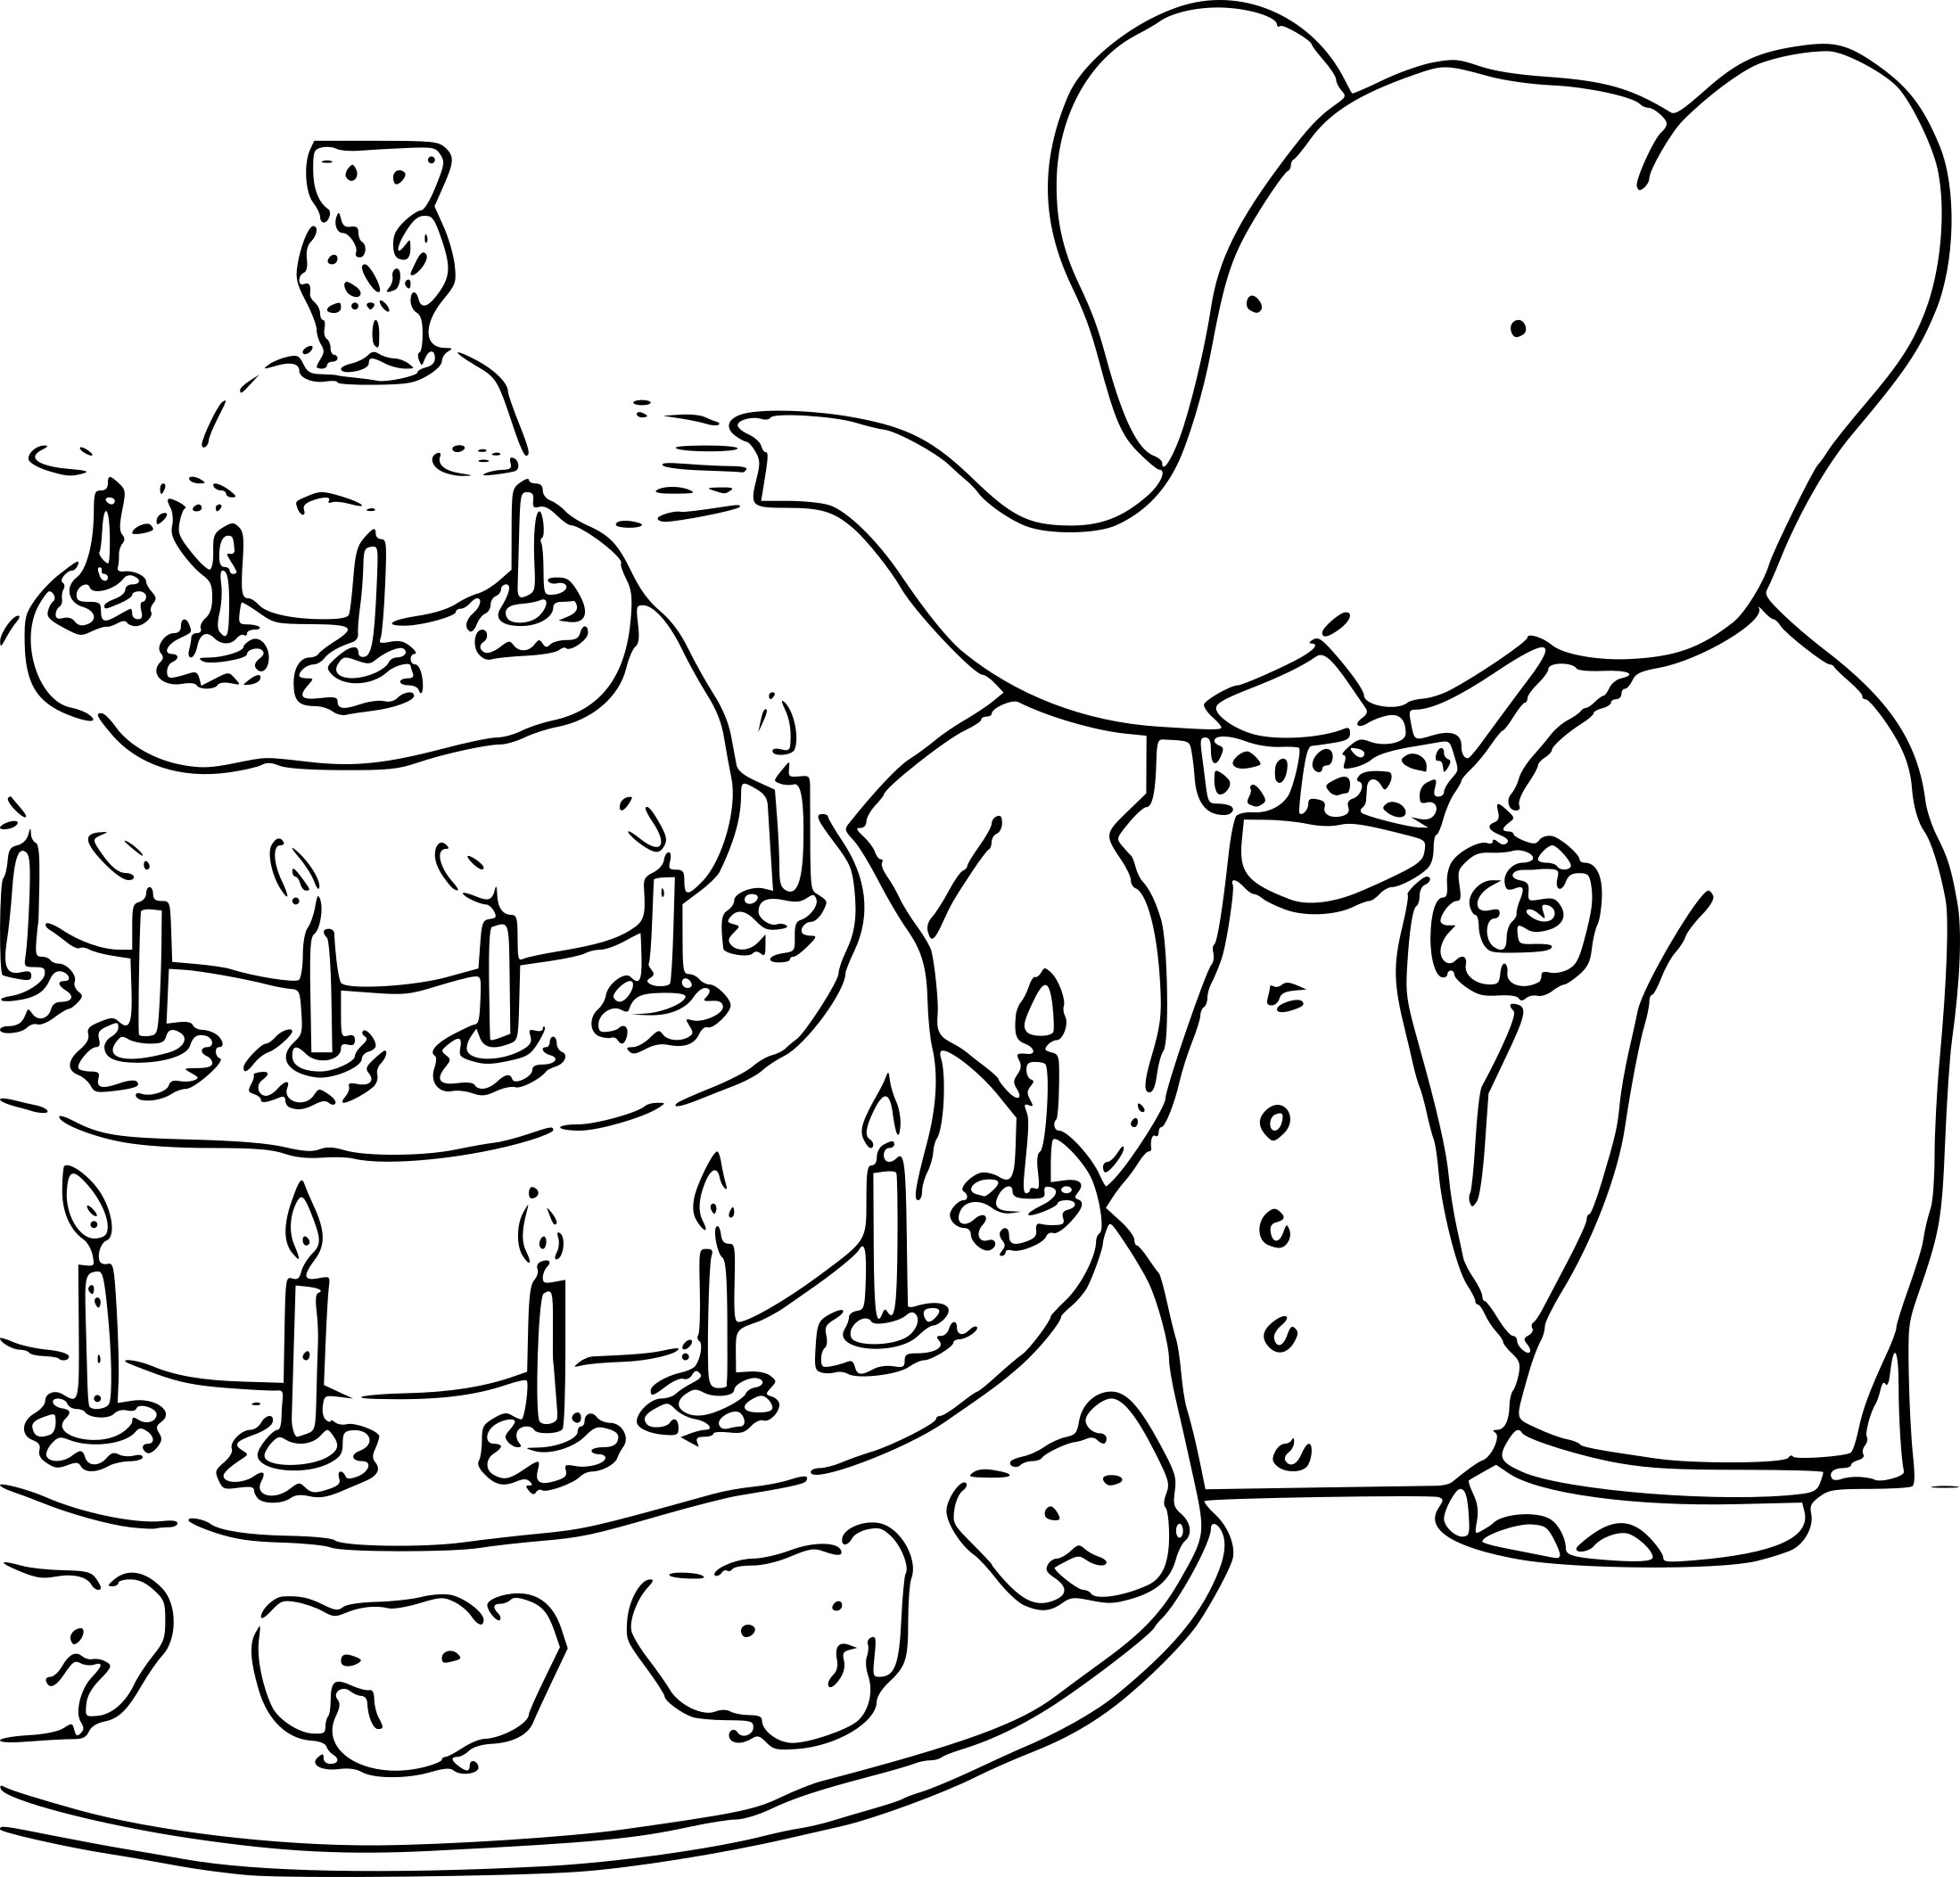 Coloriage Anniversaire Babar.Coloriage Anniversaire Babar A Imprimer Sur Coloriages Info